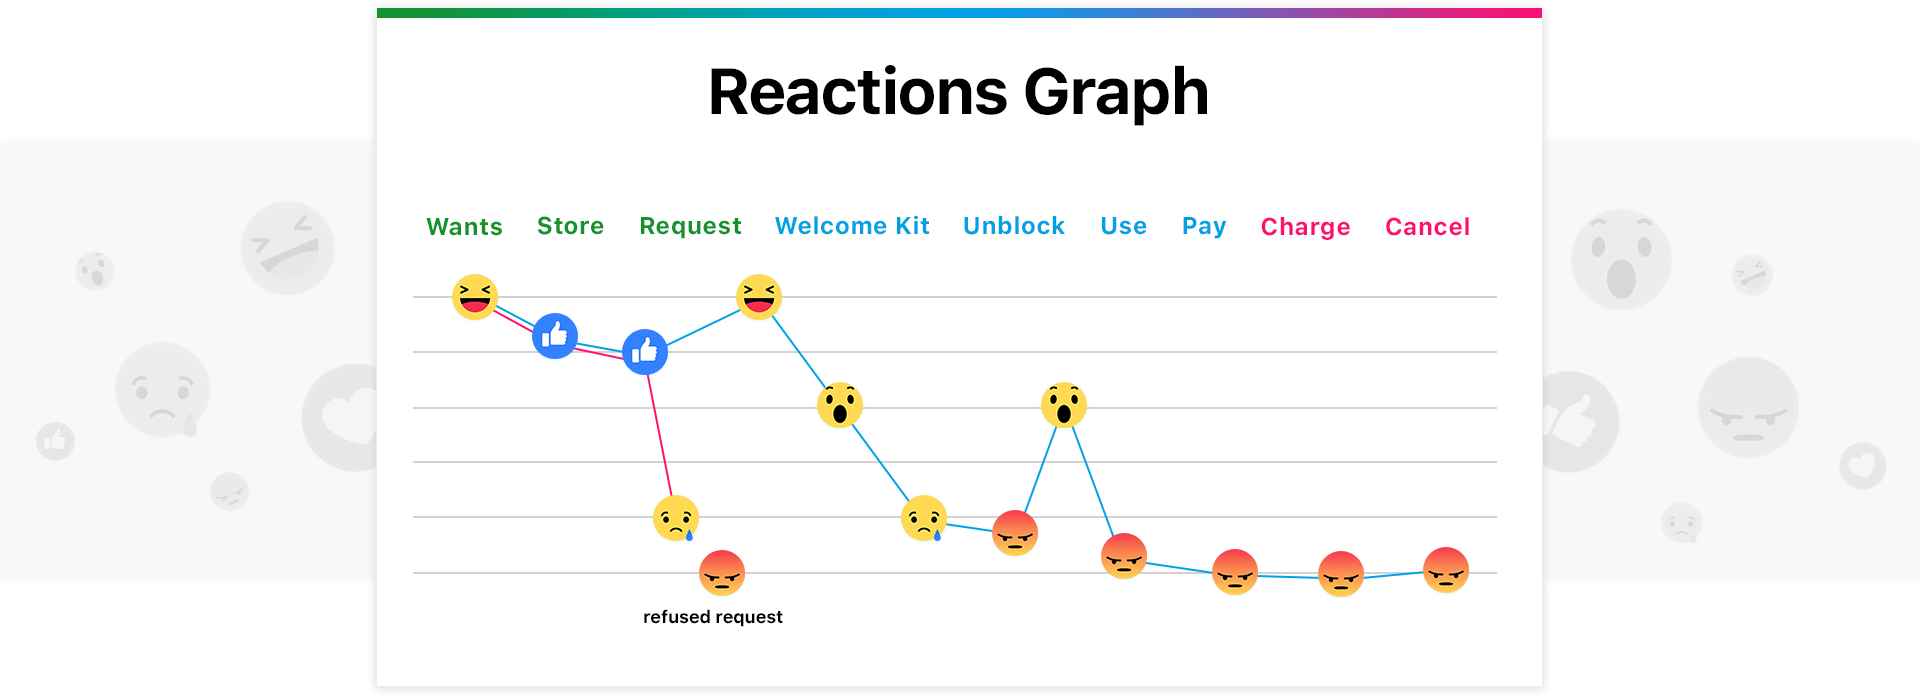 REACTIONS GRAPH